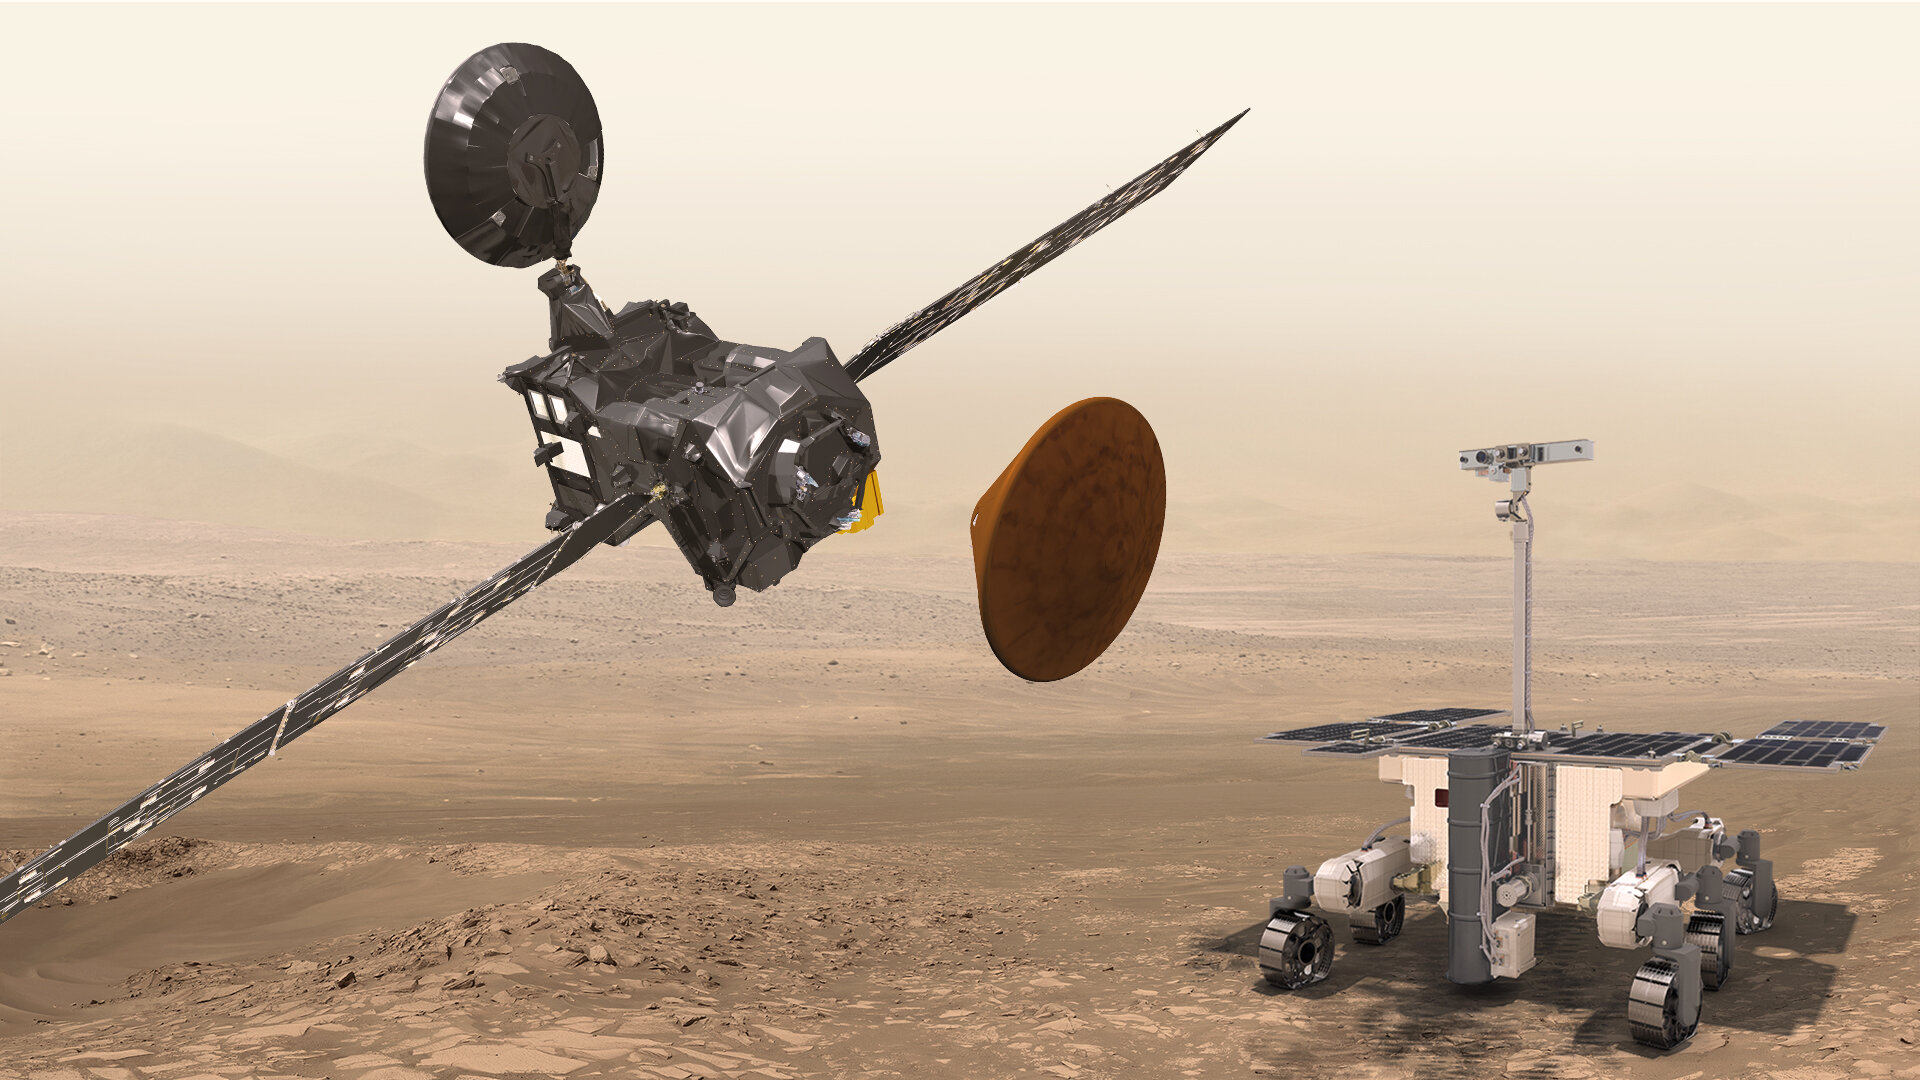 Trace Gas Orbiter, Schiaparelli and the ExoMars rover at Mars